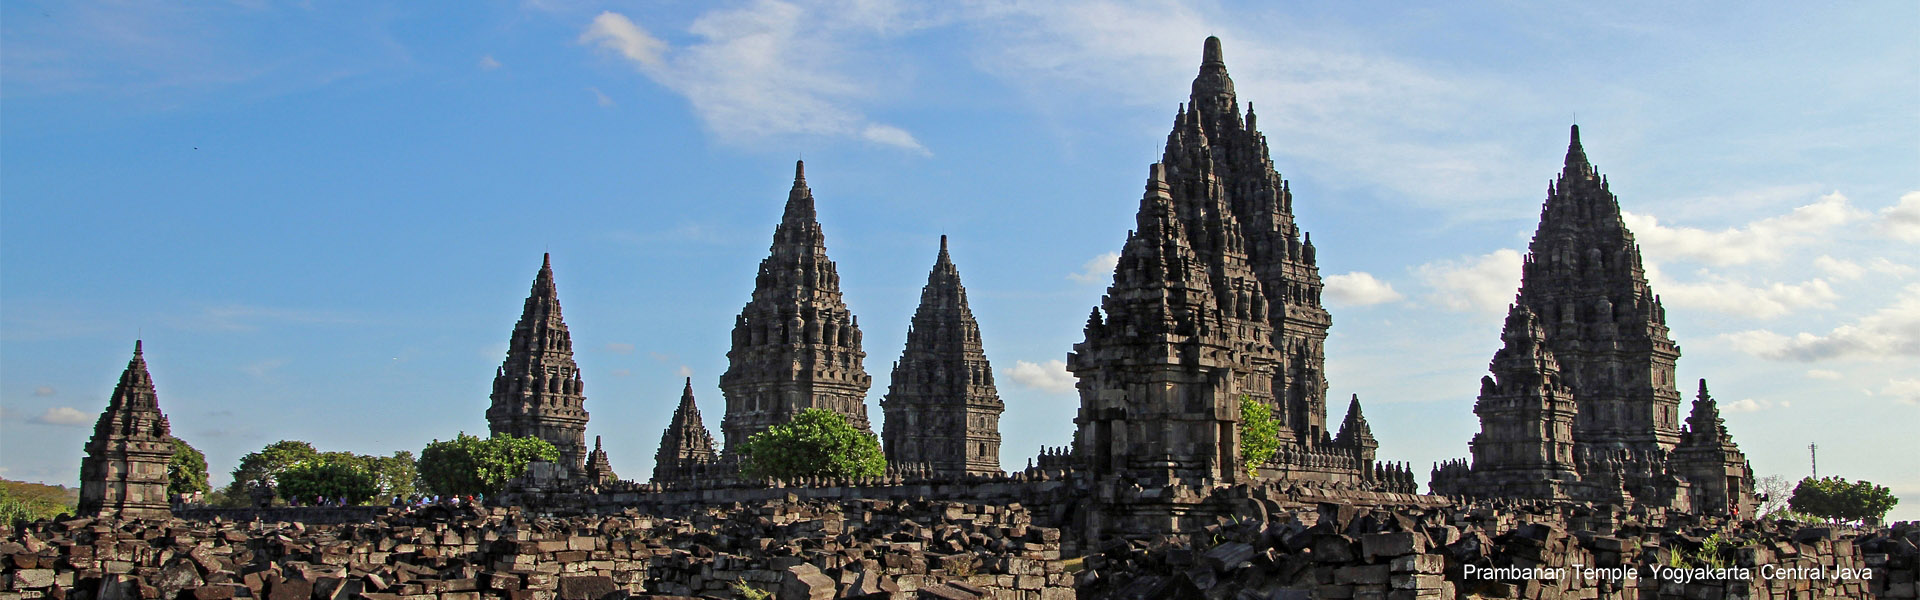 The ancient wonder of Prambanan Temple, Yogyakarta, Central Java